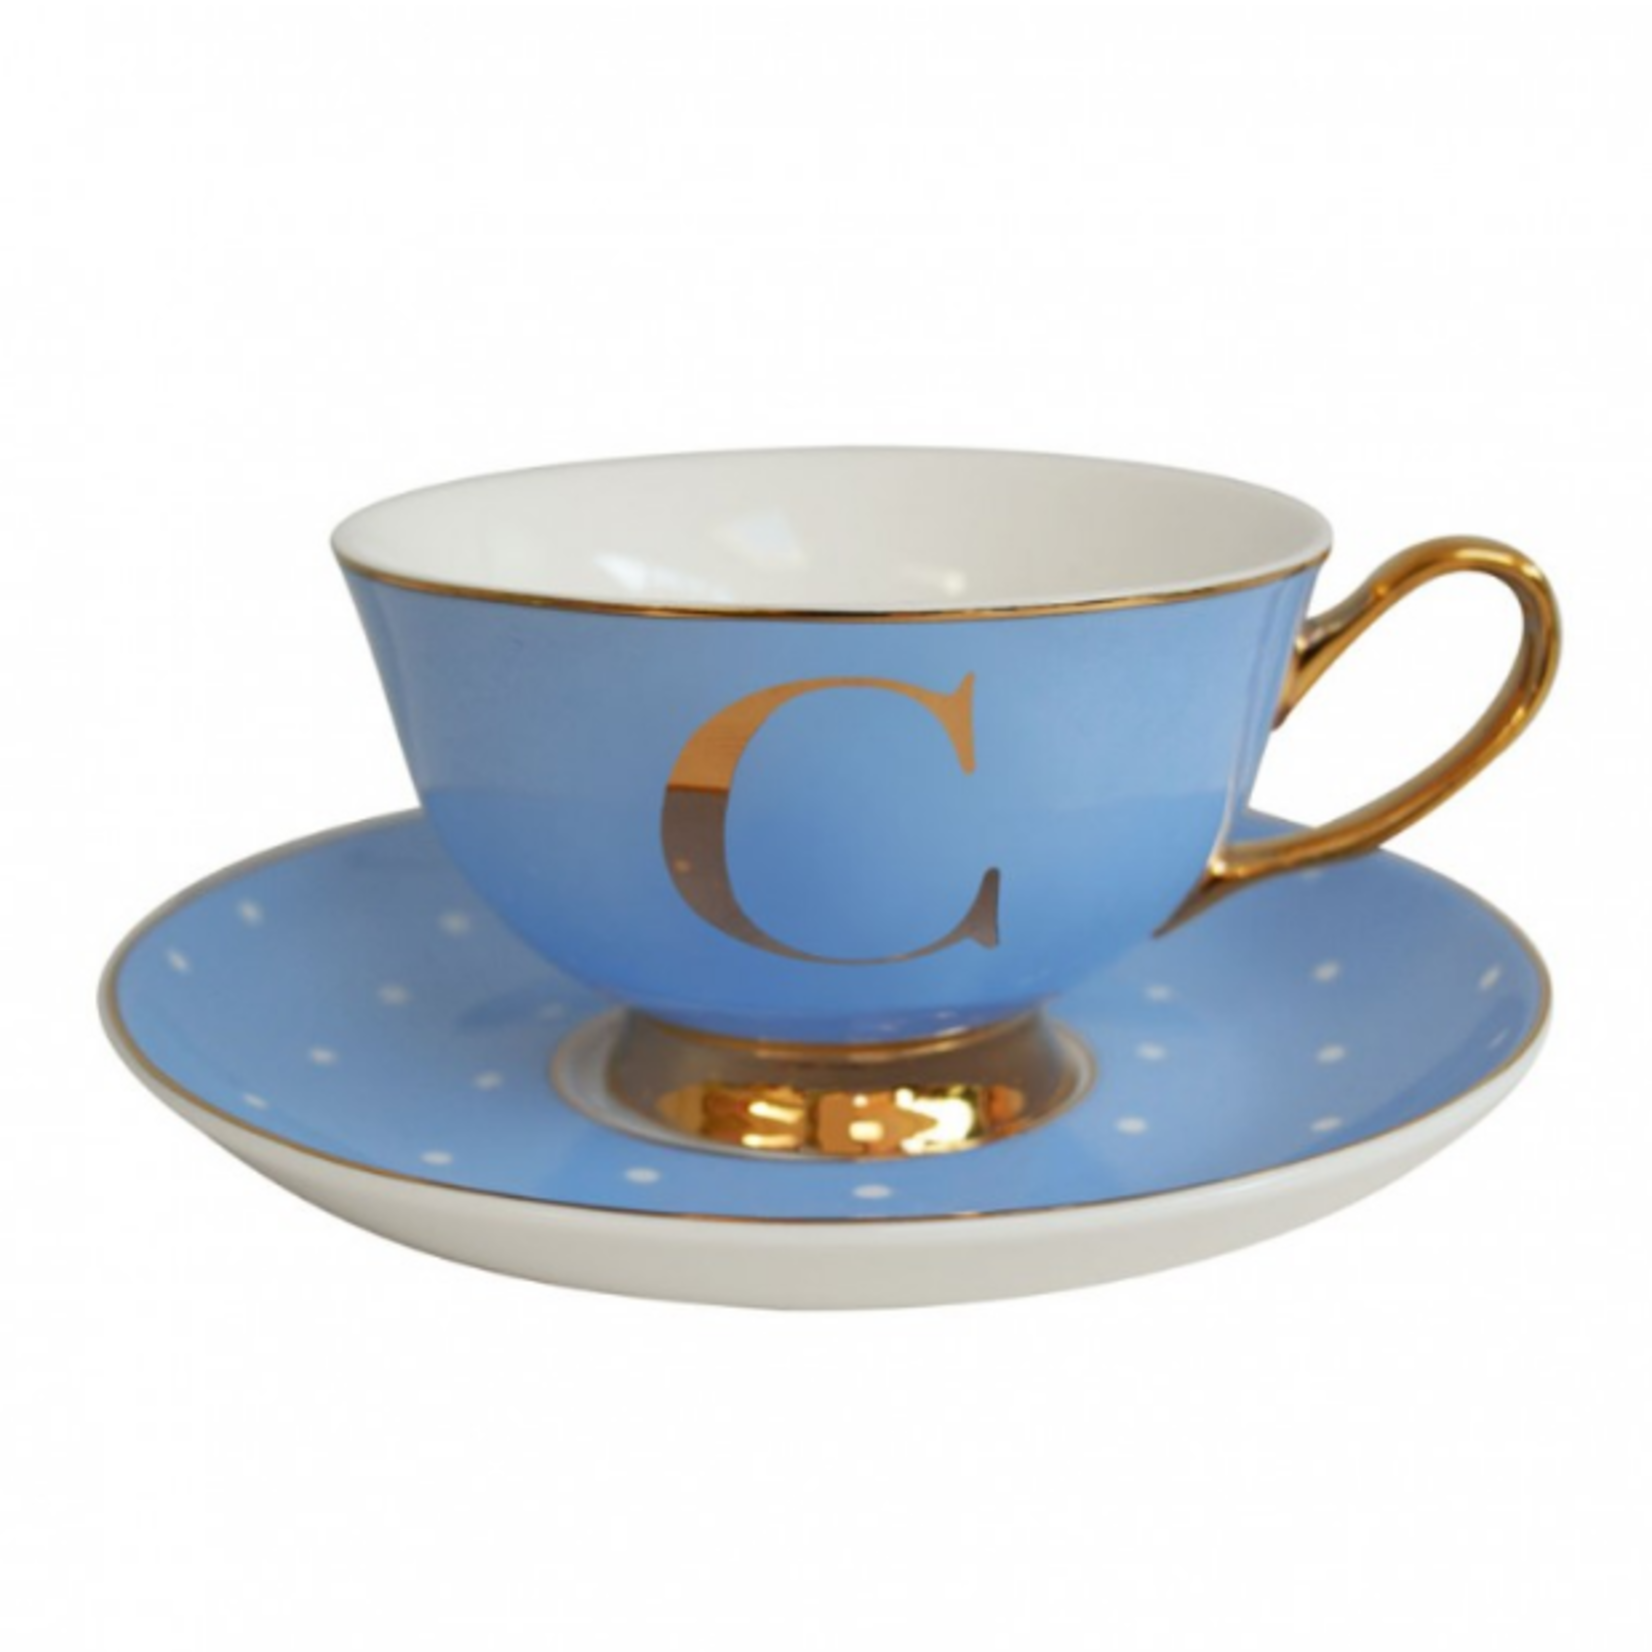 BoDuck Alphabet Spotty Teacup and Saucer Letter C Gold/Powder Blue